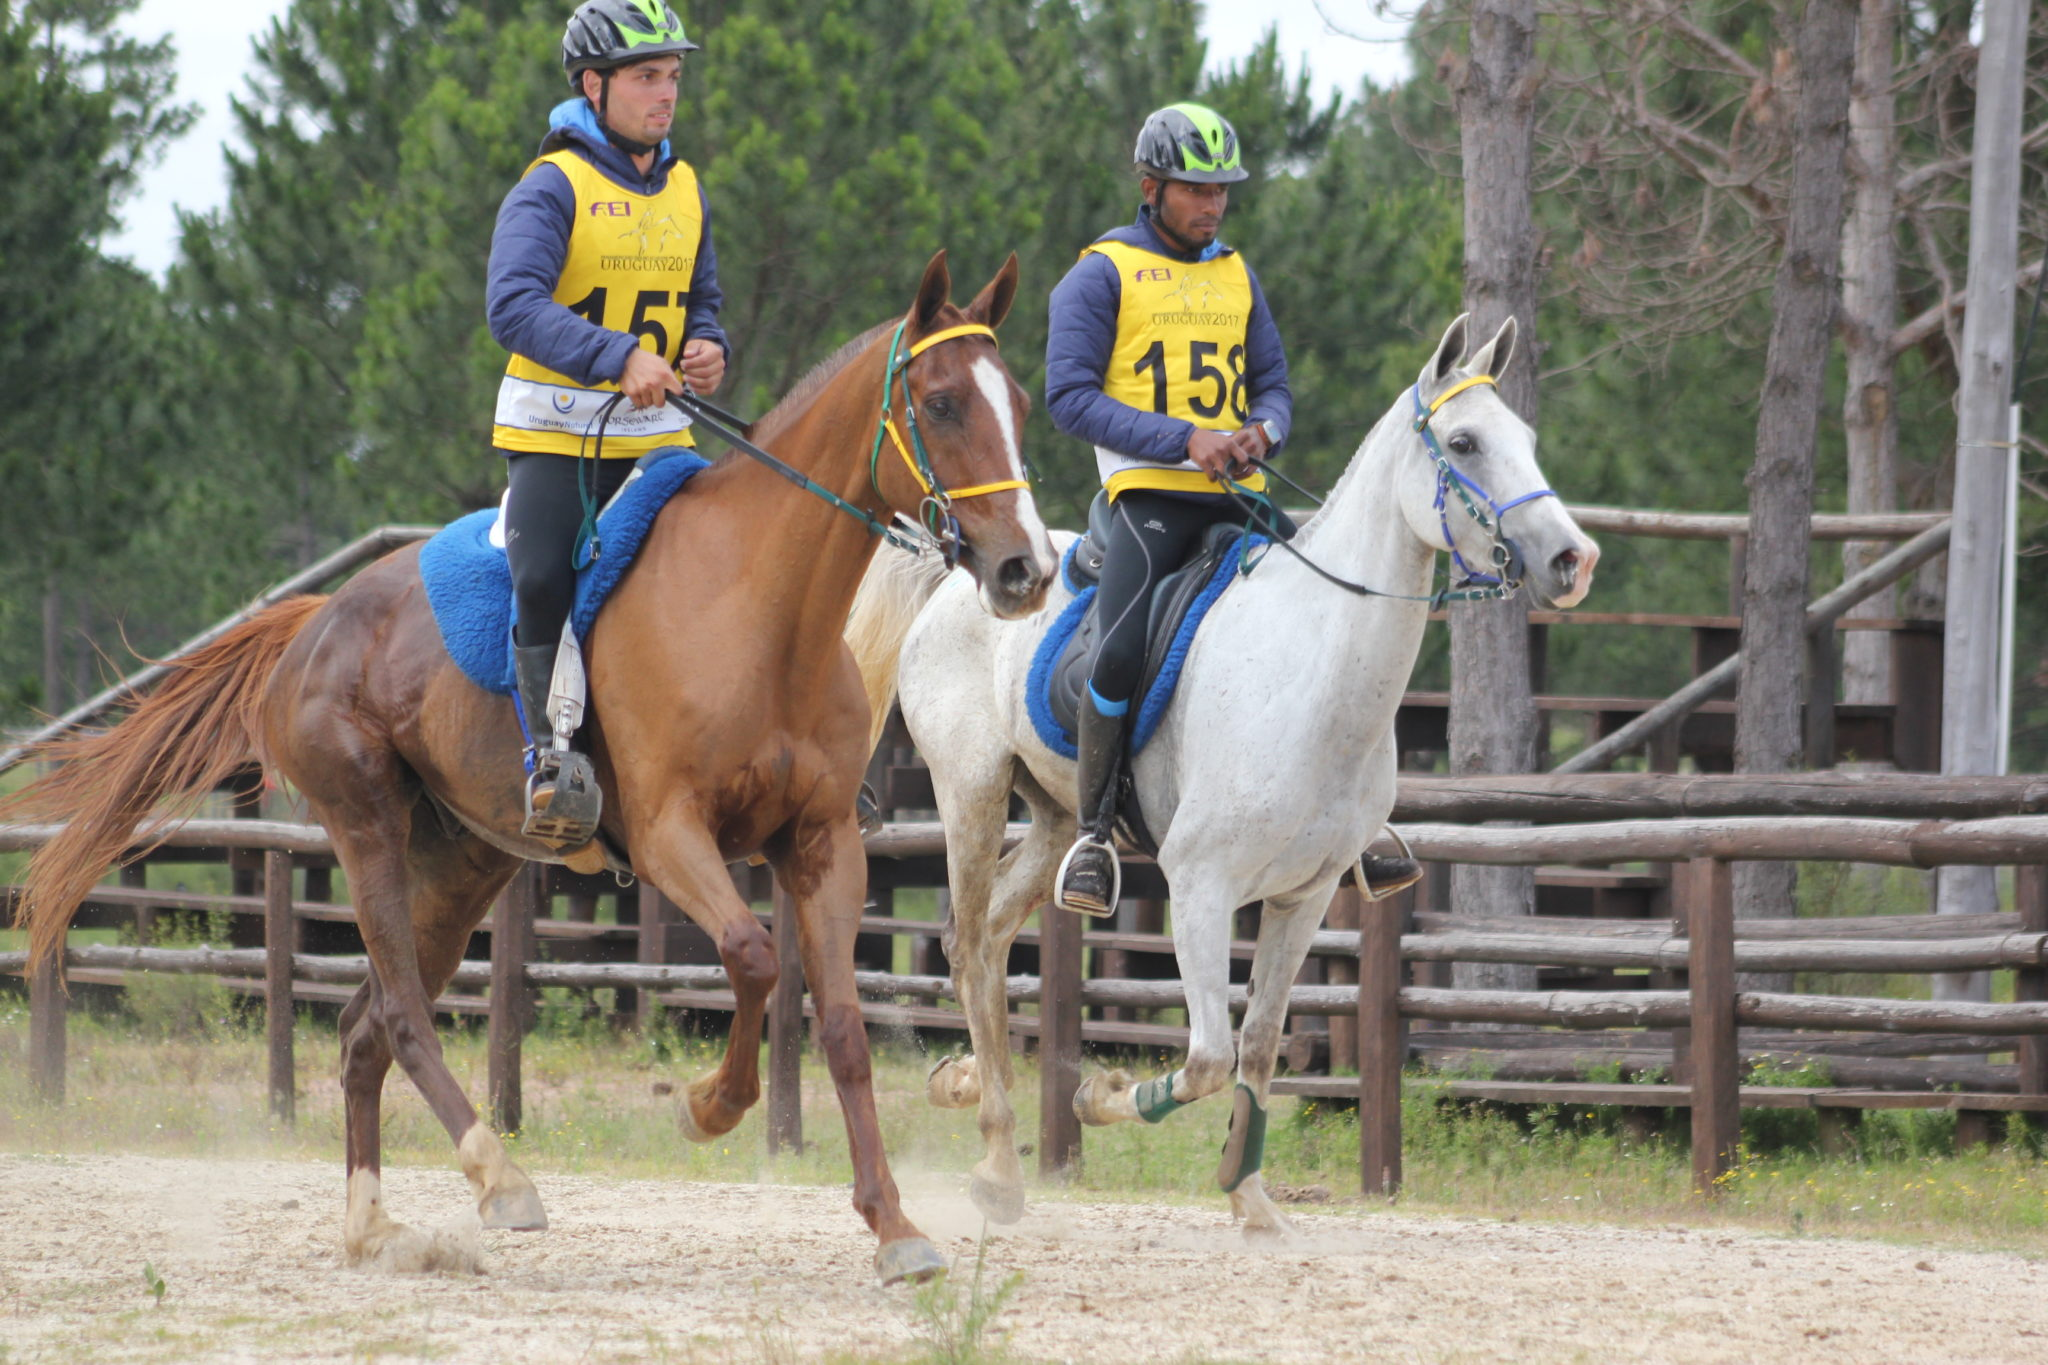 Endurance World Haras La Perseverancia. Two together.